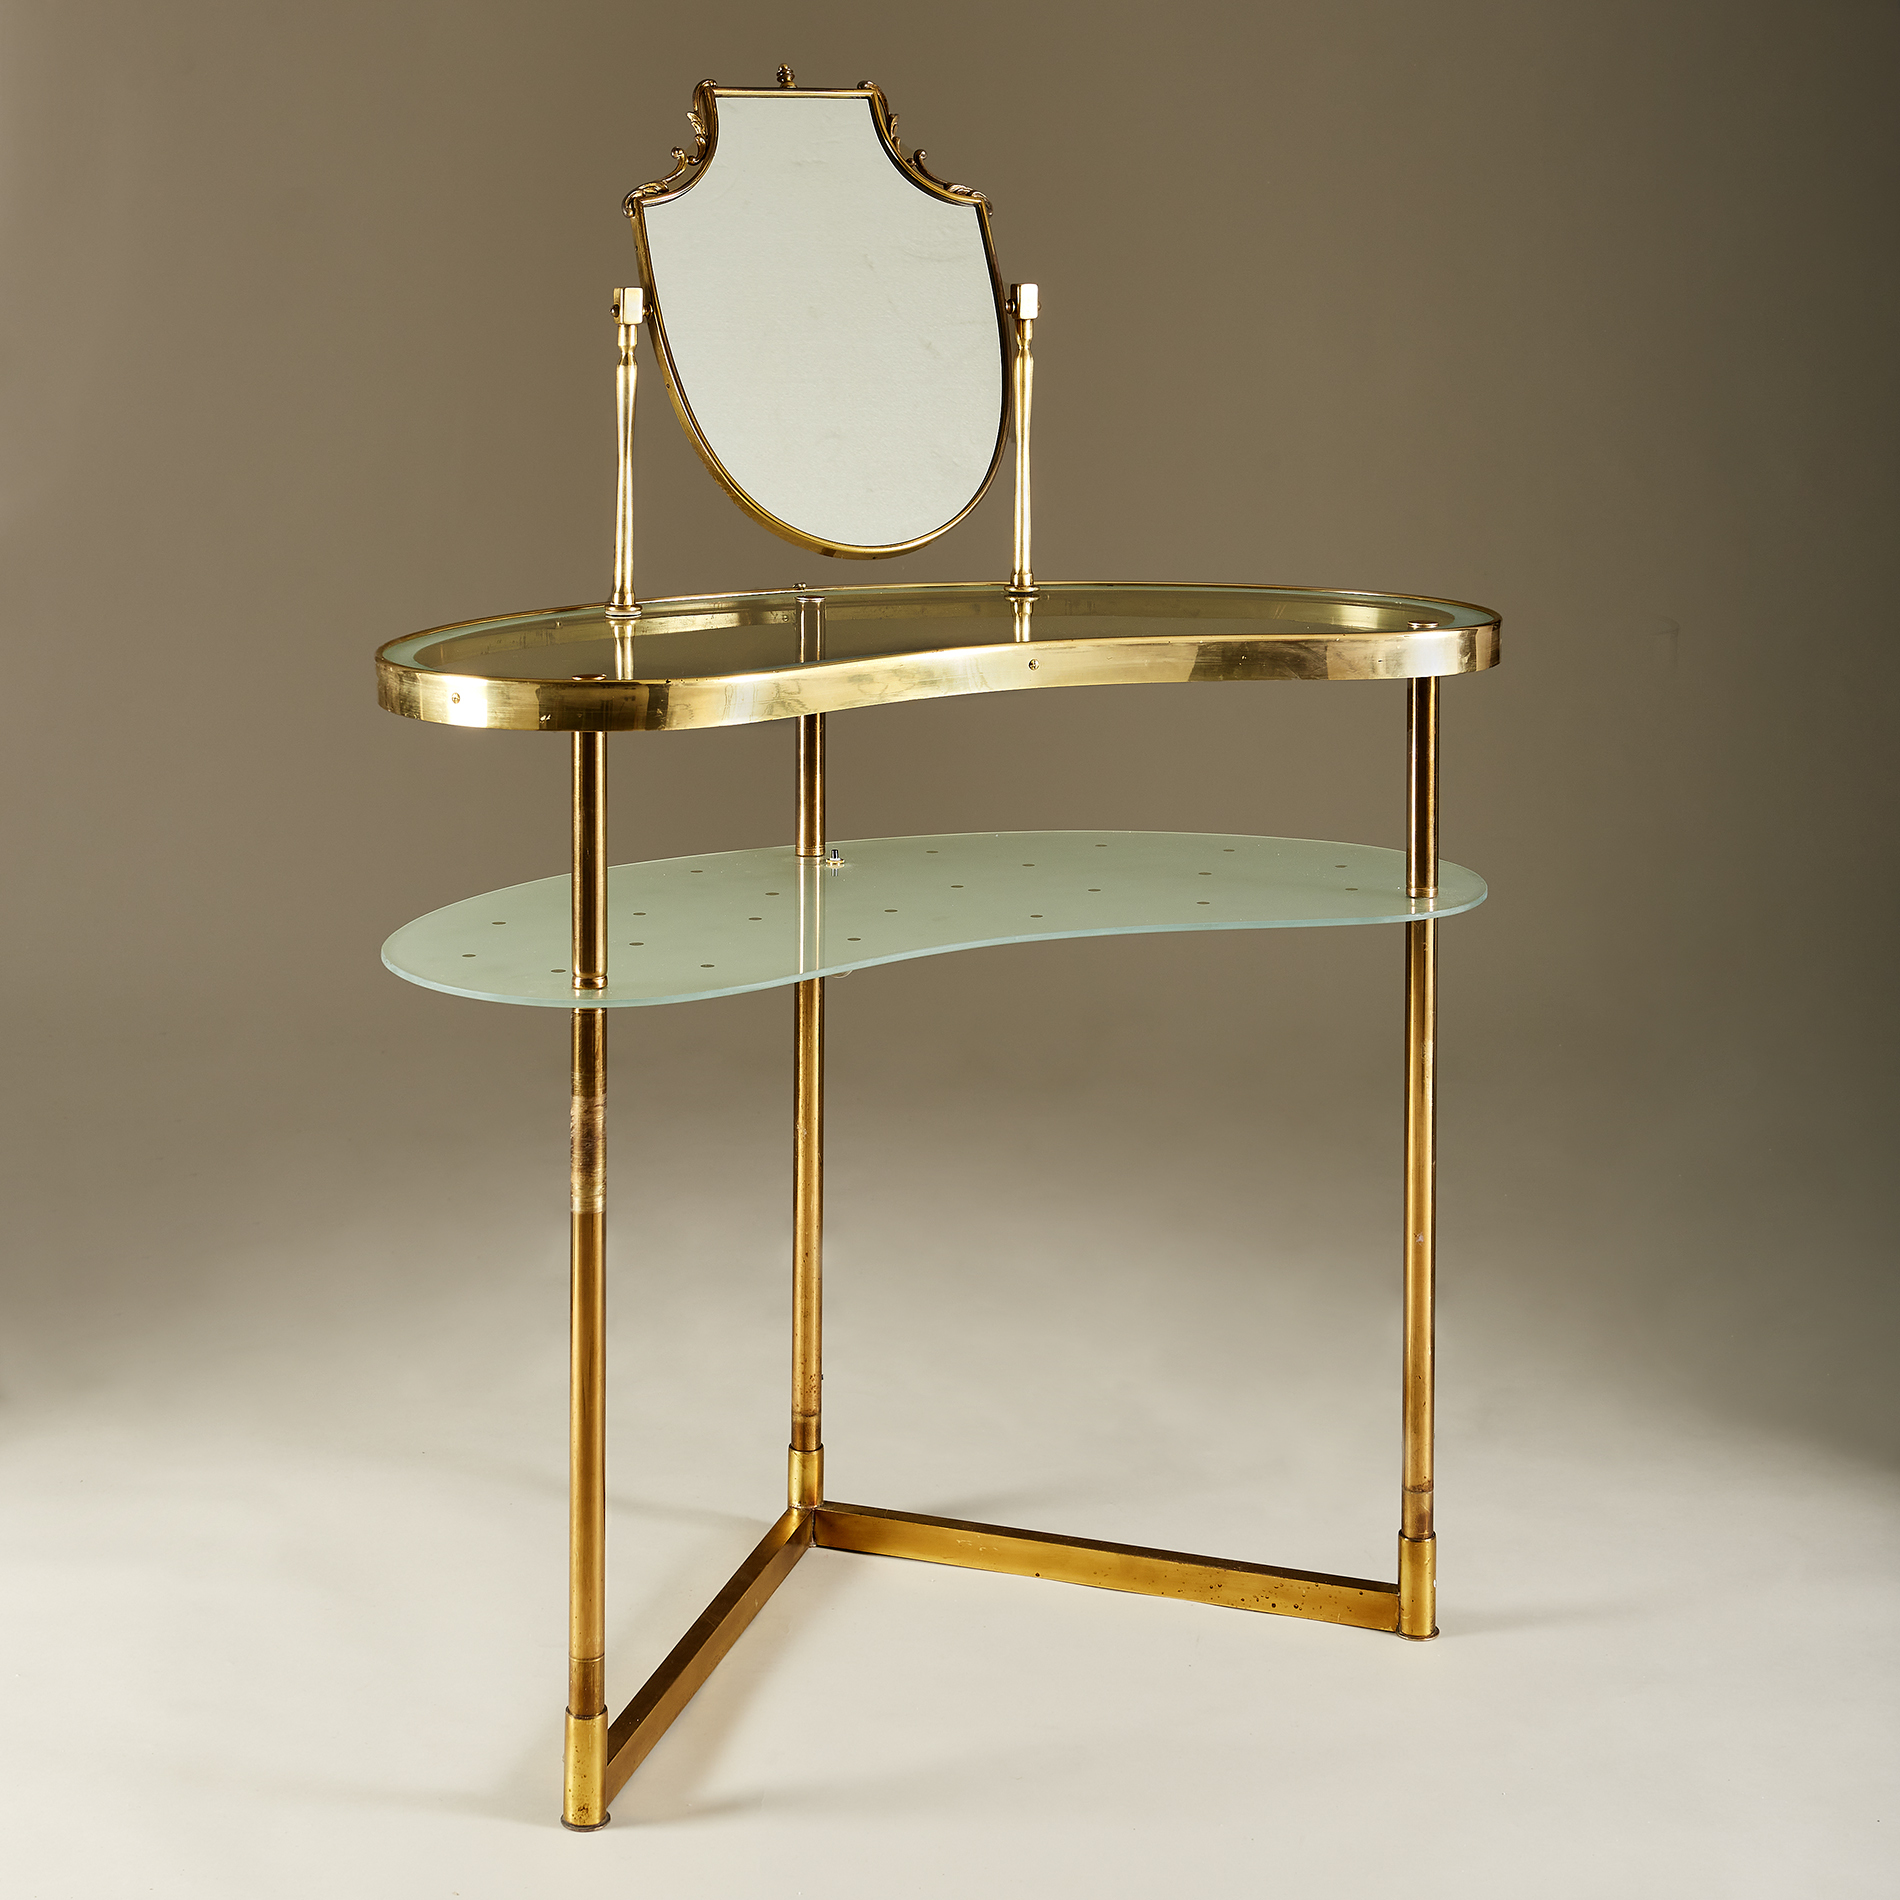 Italian Polka Dot Dressing Table 20210126 Valerie Wade 0079 V1